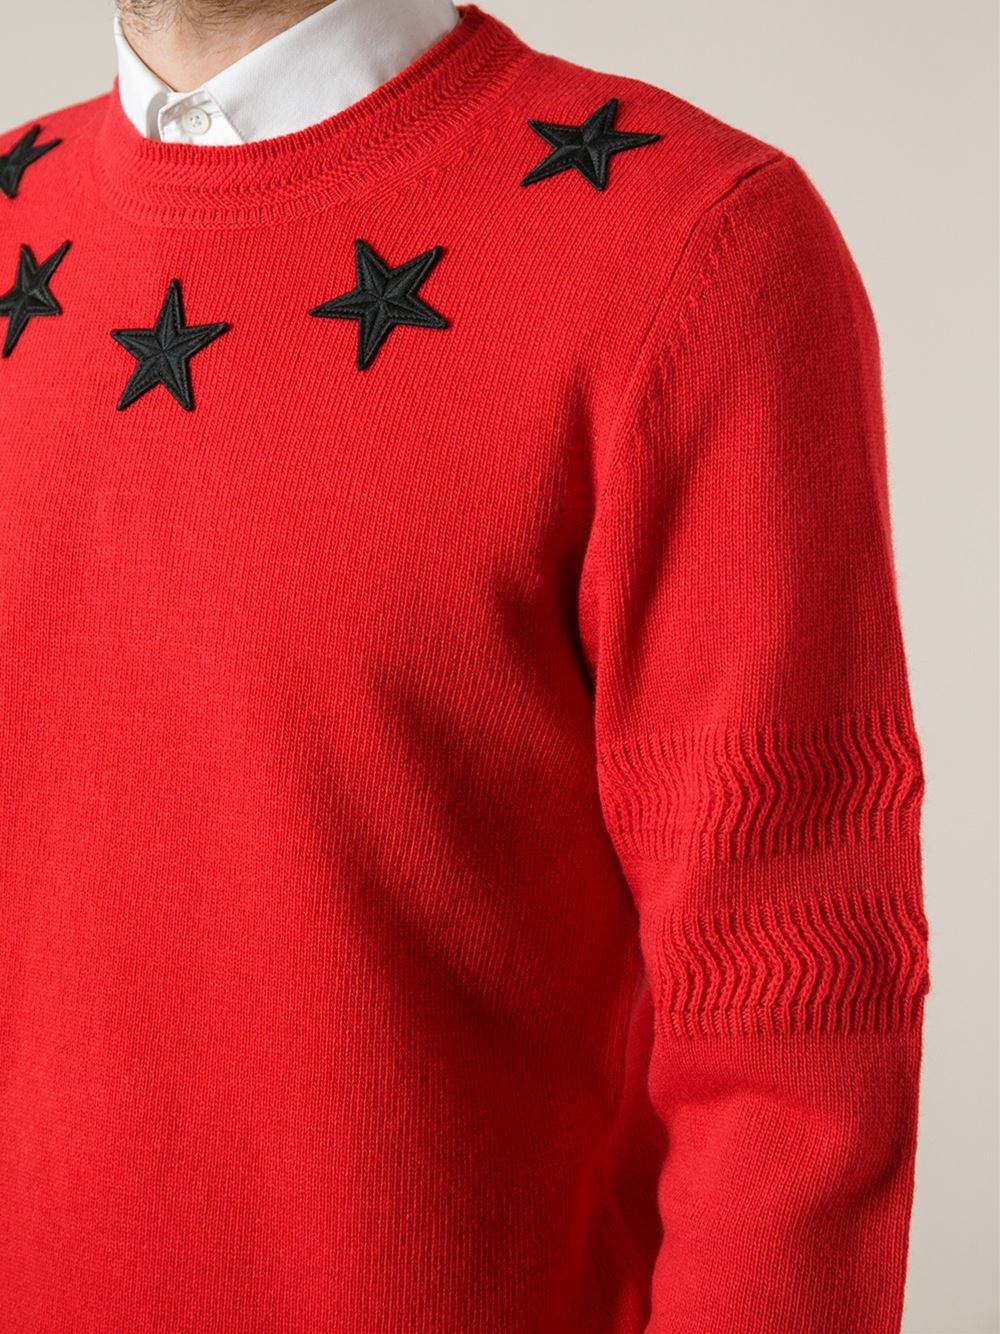 Givenchy Star Sweater in Red for Men | Lyst